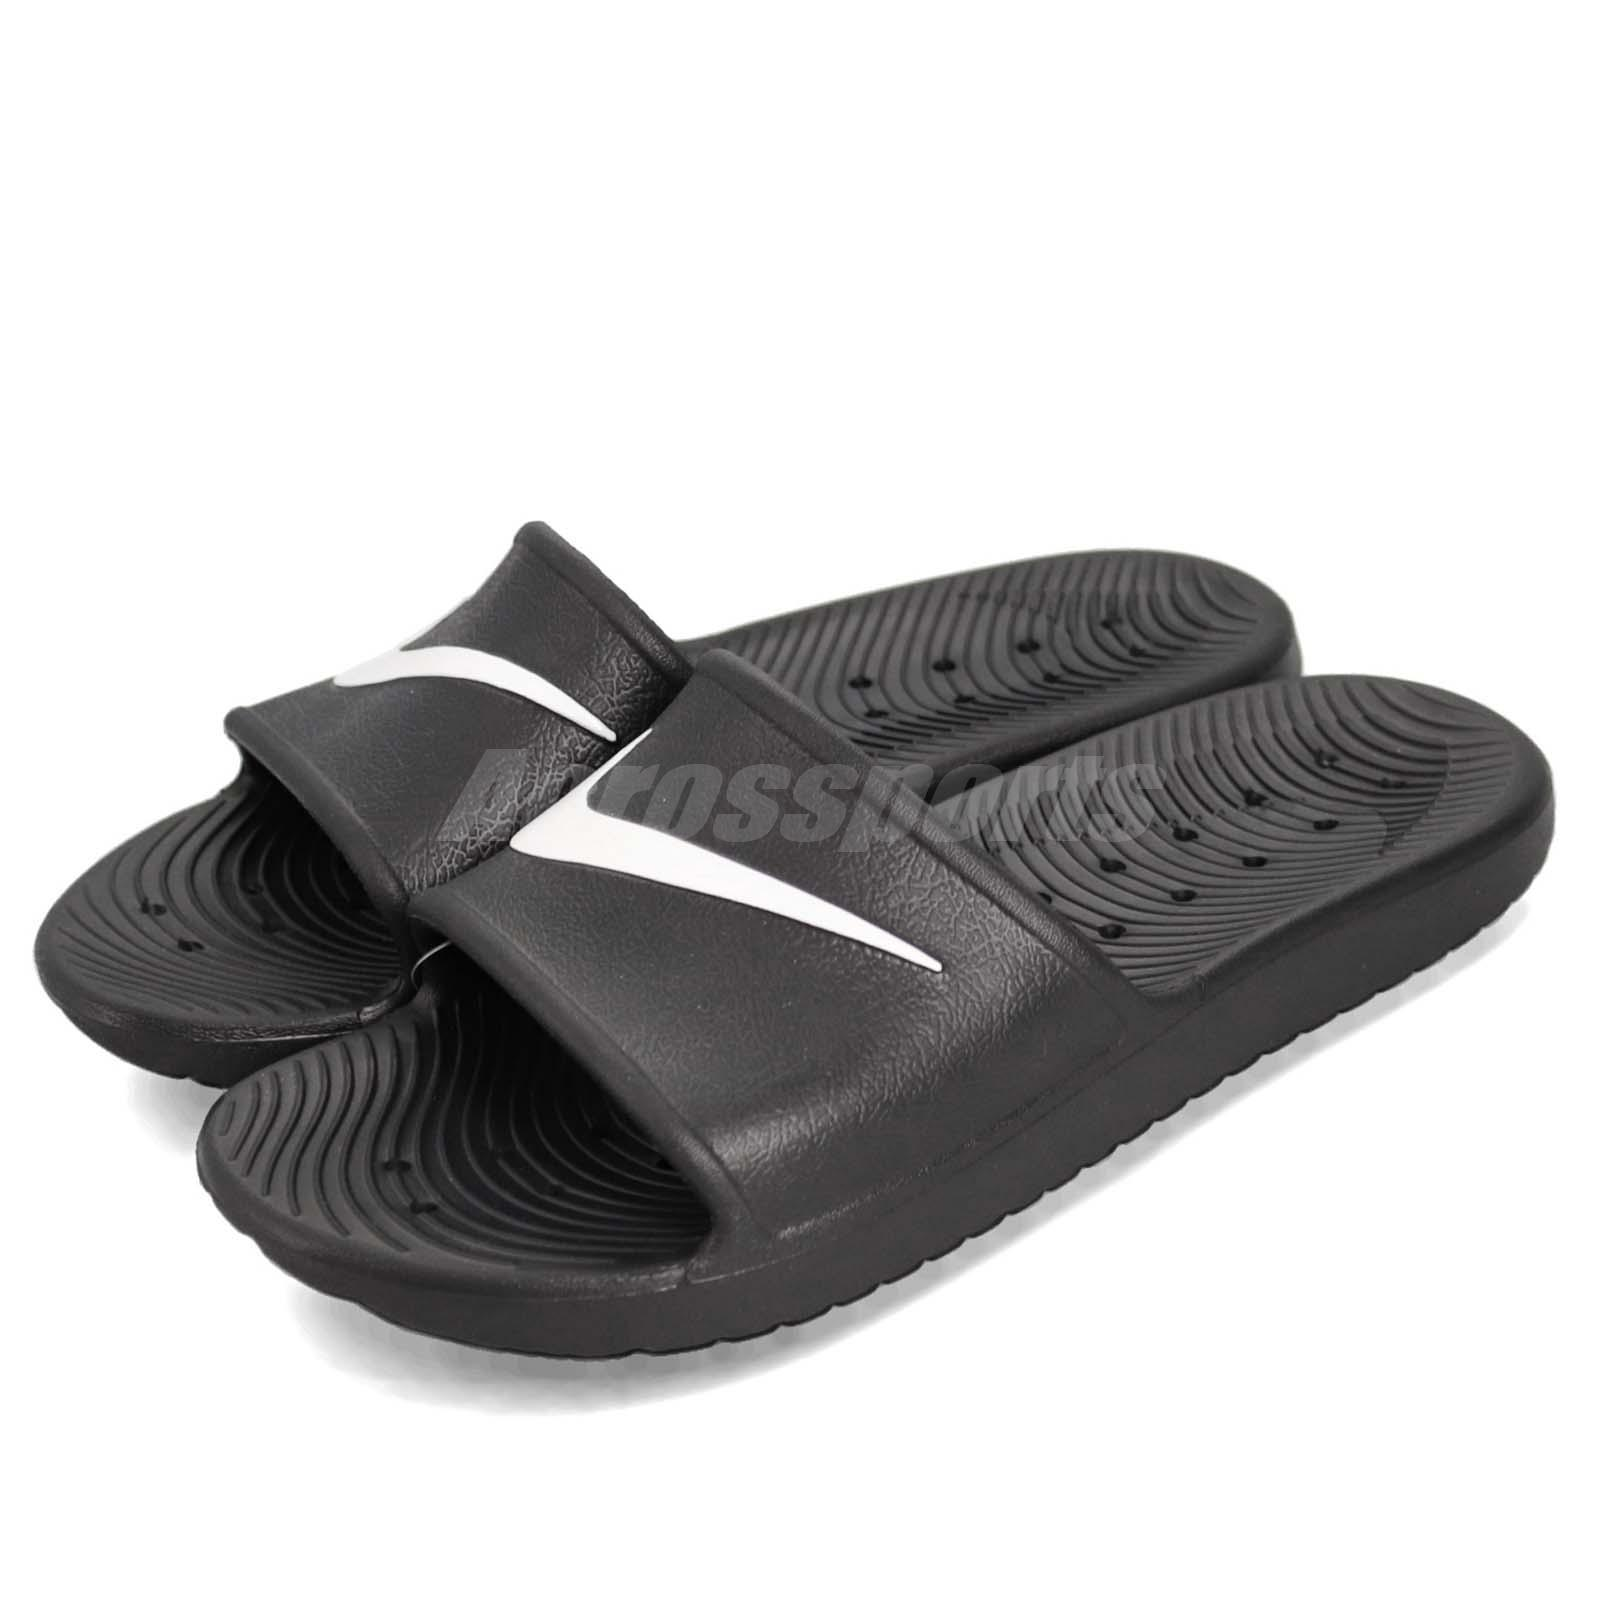 new arrival 24117 52cac Details about Nike Kawa Shower Black White Men Sports Sandals Slides  Slippers 832528-001